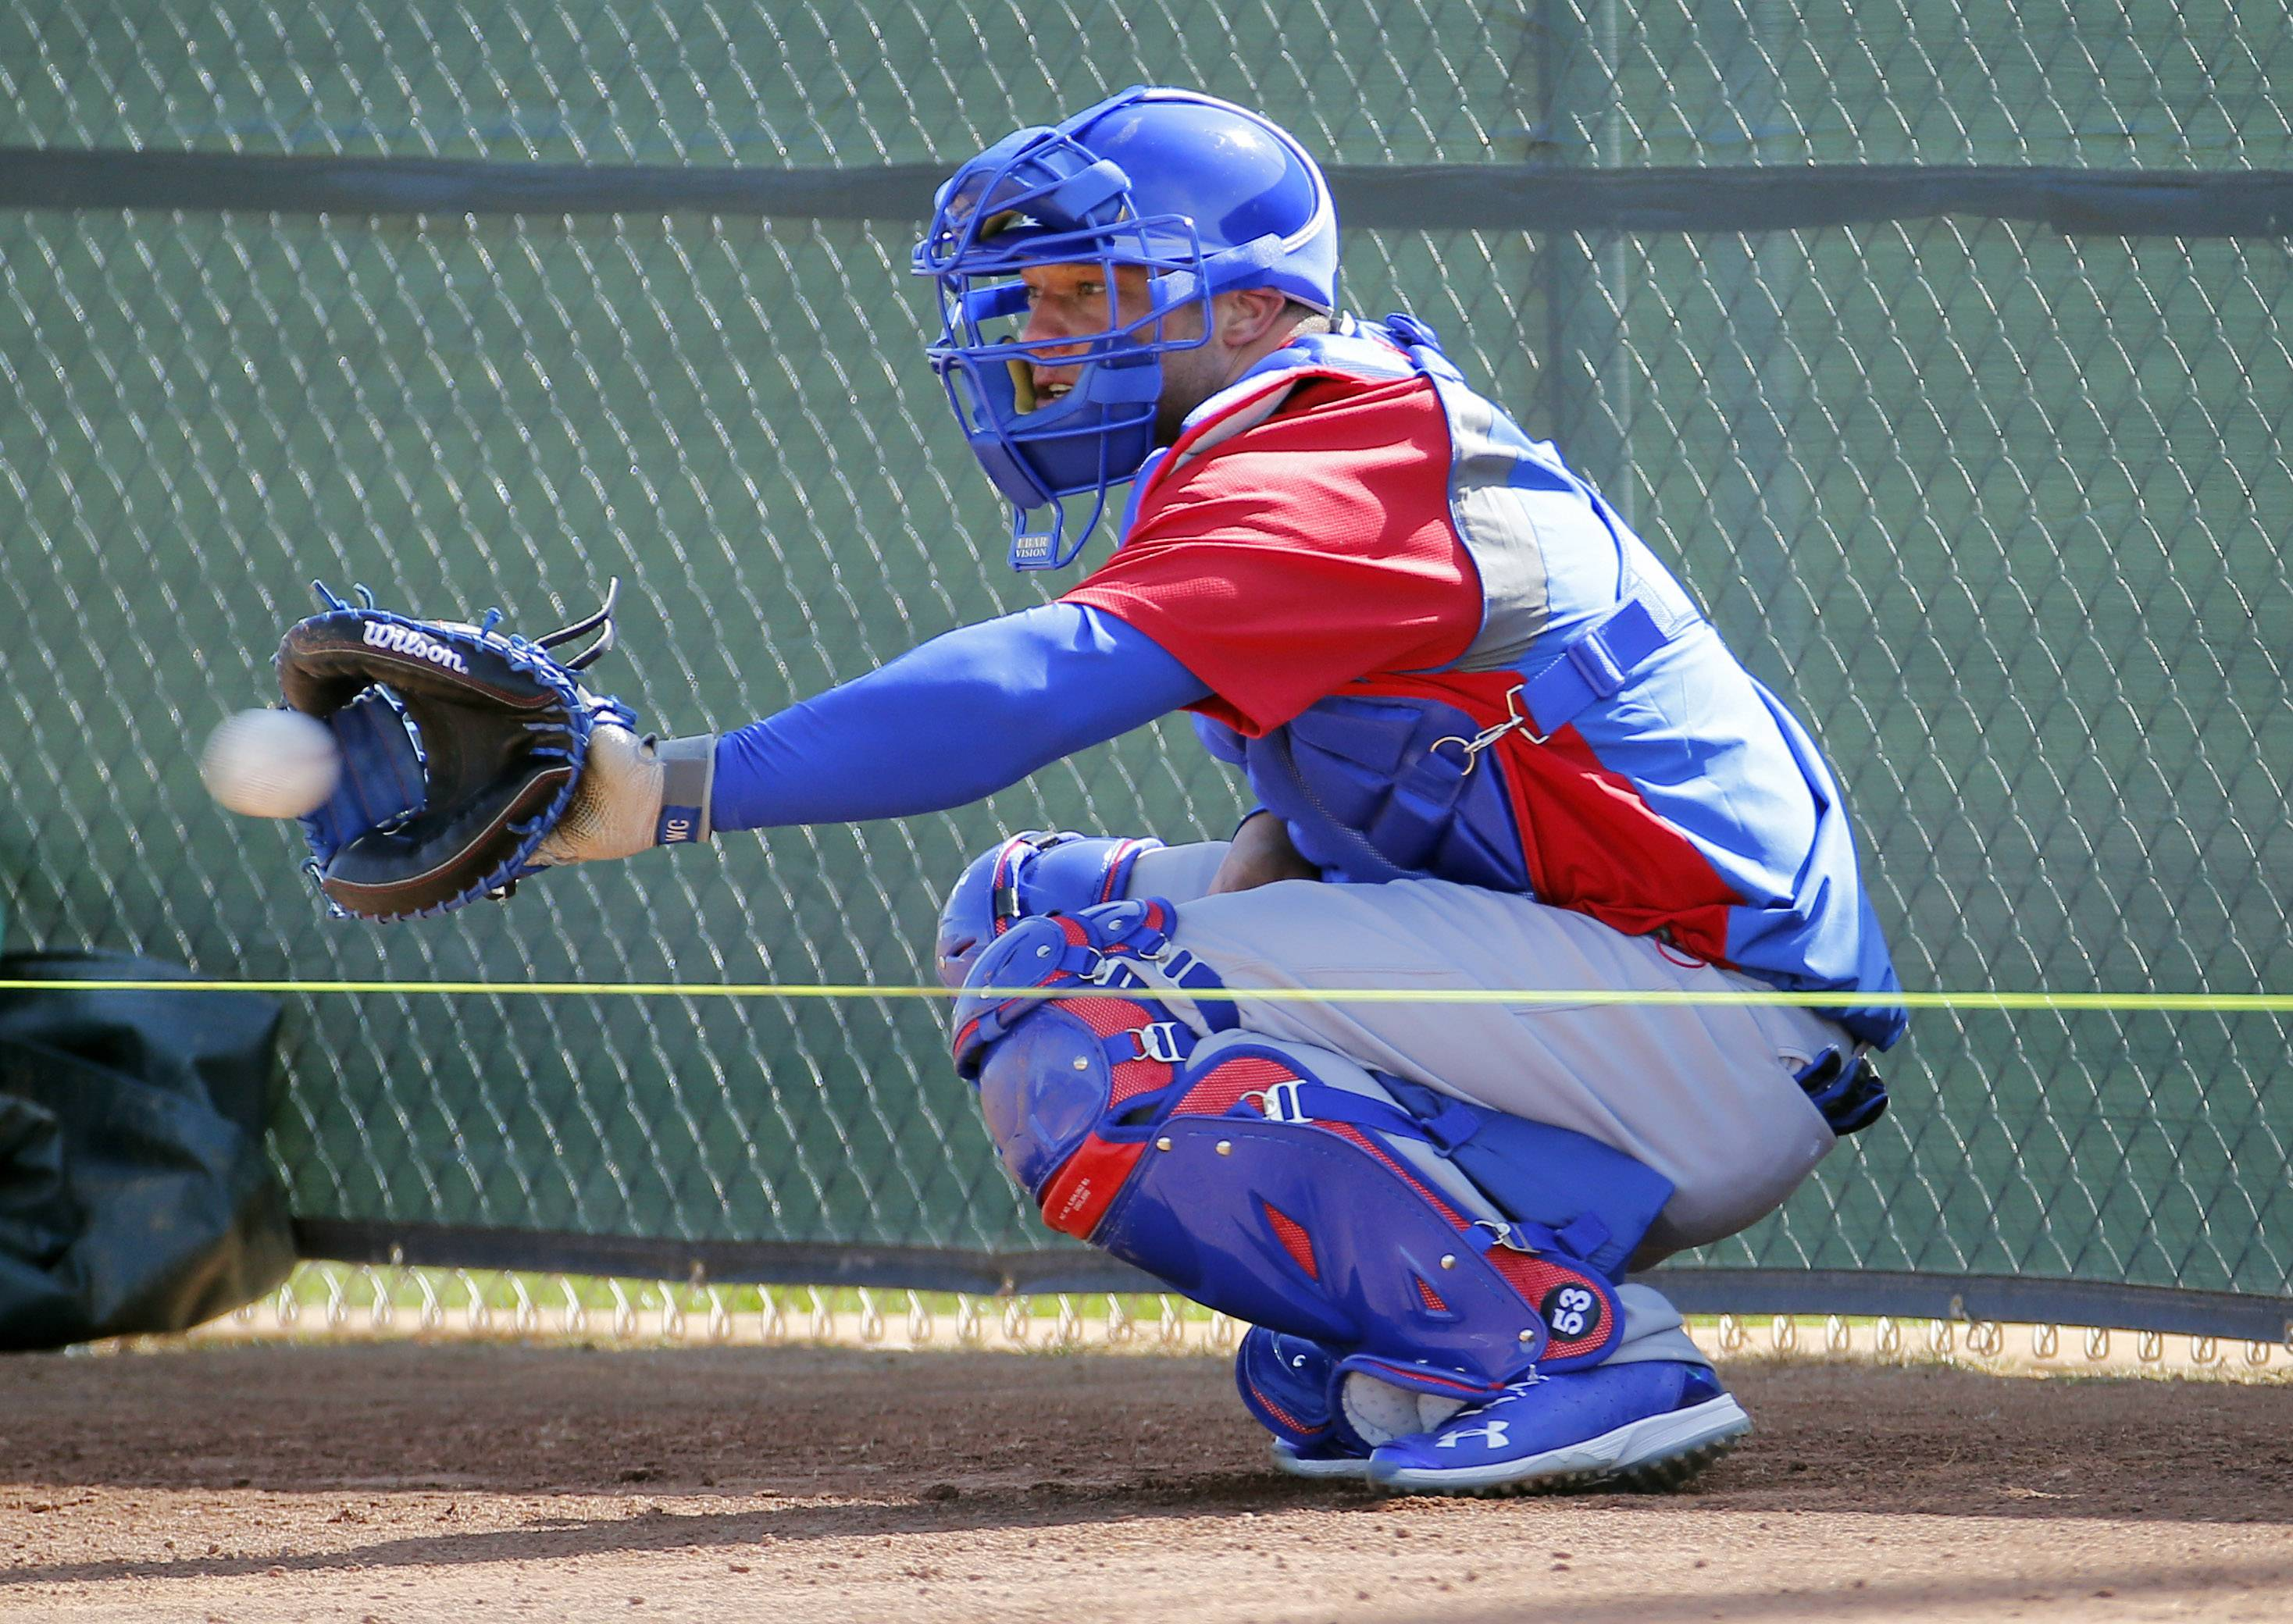 Castillo looks to take next step for Cubs